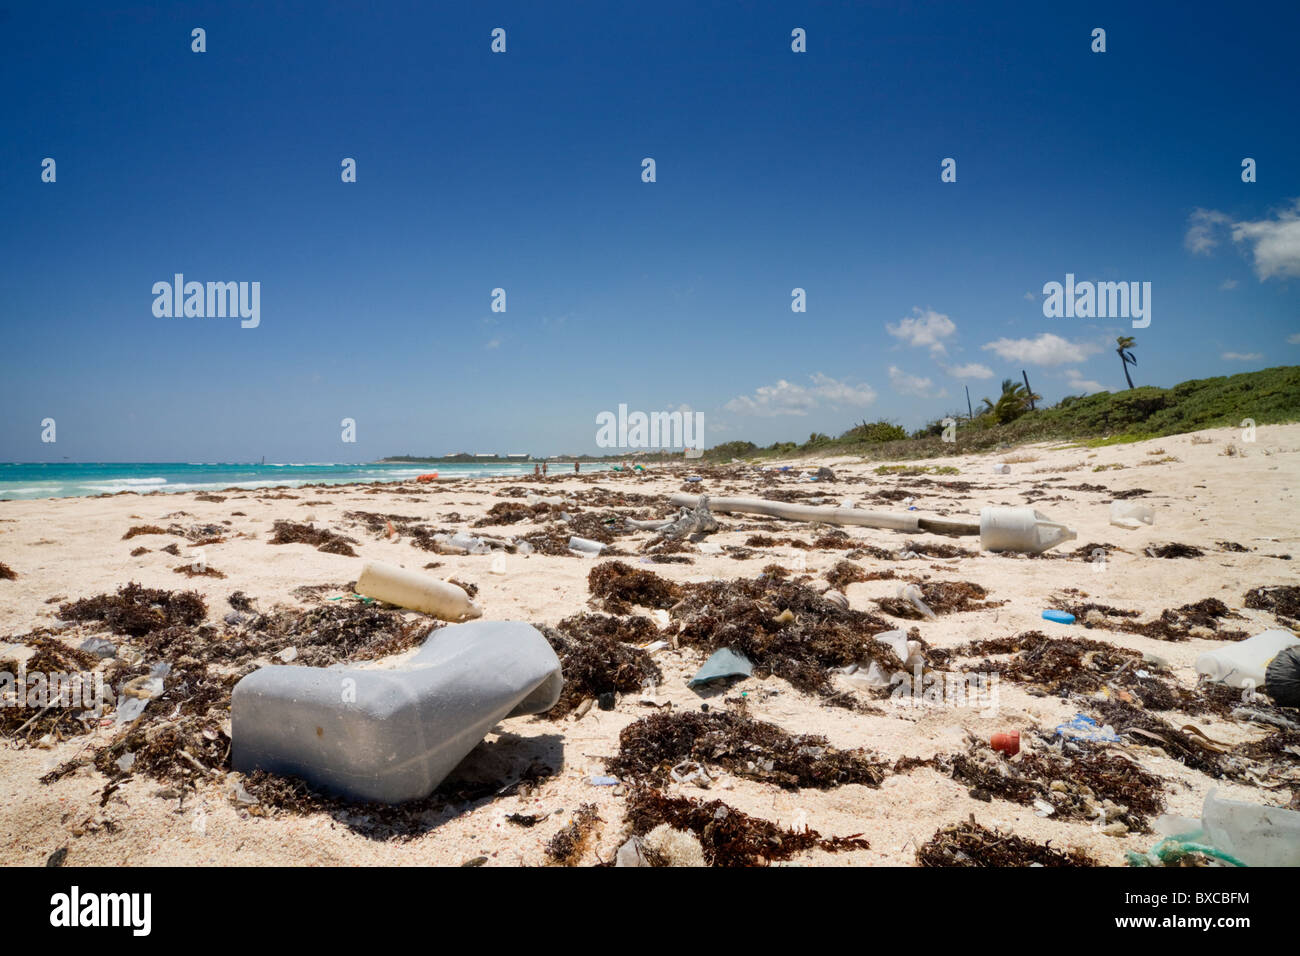 Close up view of washed up garbage on a beach right next to a vacation resort. Stock Photo